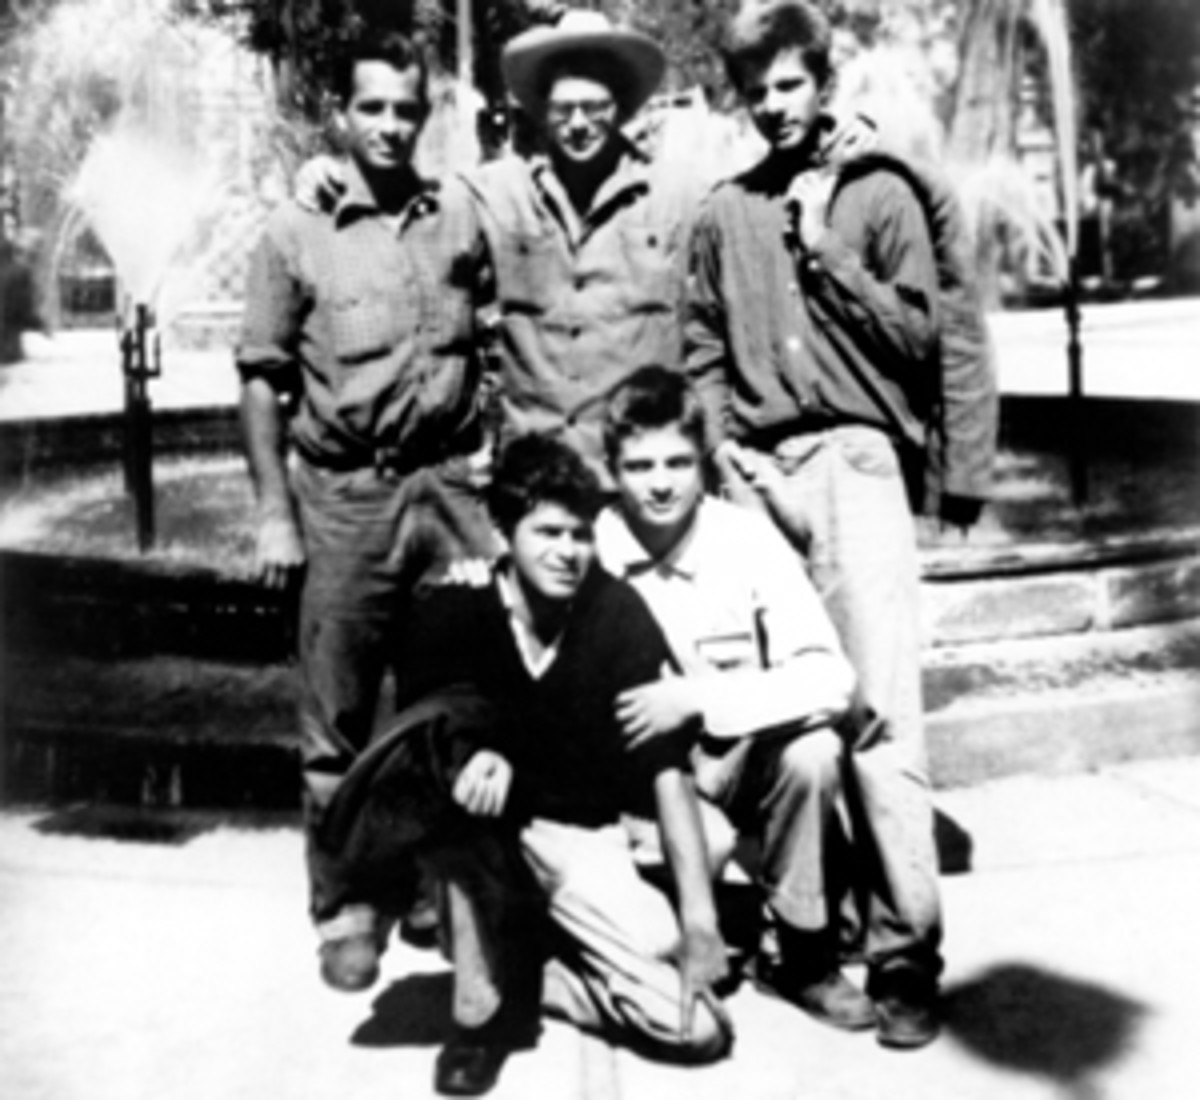 Jack Kerouac, Allen Ginsberg, Peter Orlovsky, Lafcadio Orlovsky, and Gregory Corso in NYC in 1956